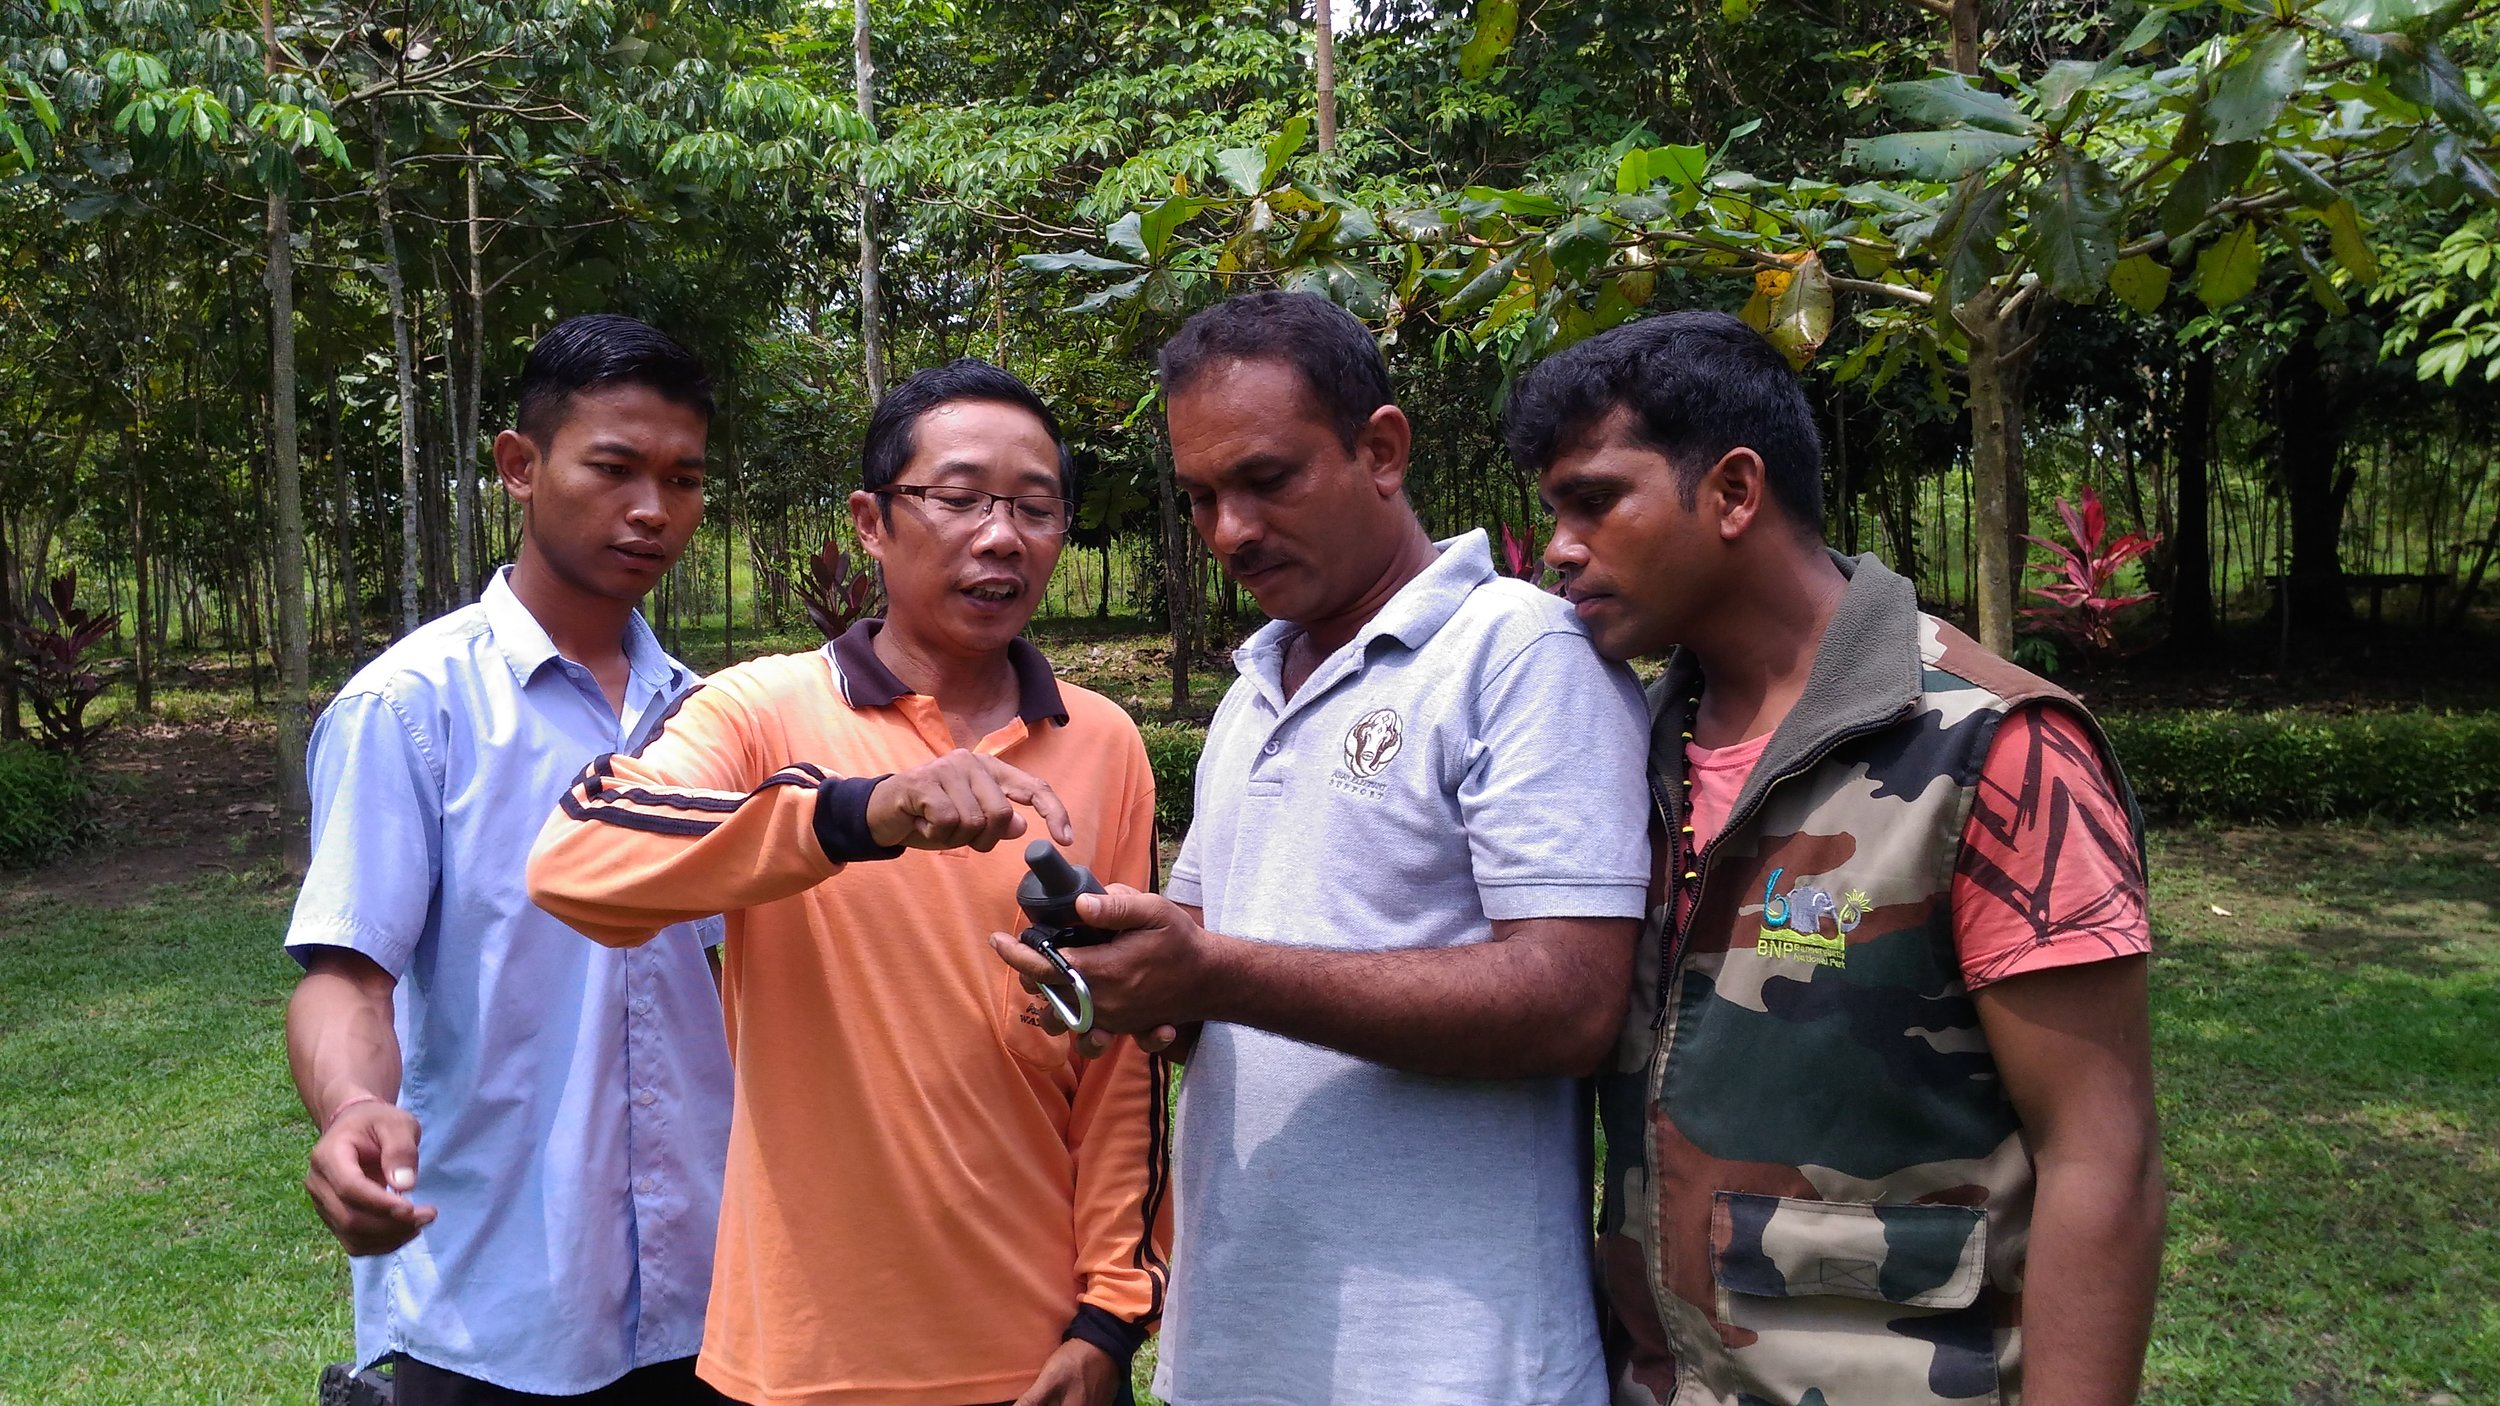 Two Karnataka mahouts (right) being instructed on the use of a GPS unit by two Indonesian mahouts (left)